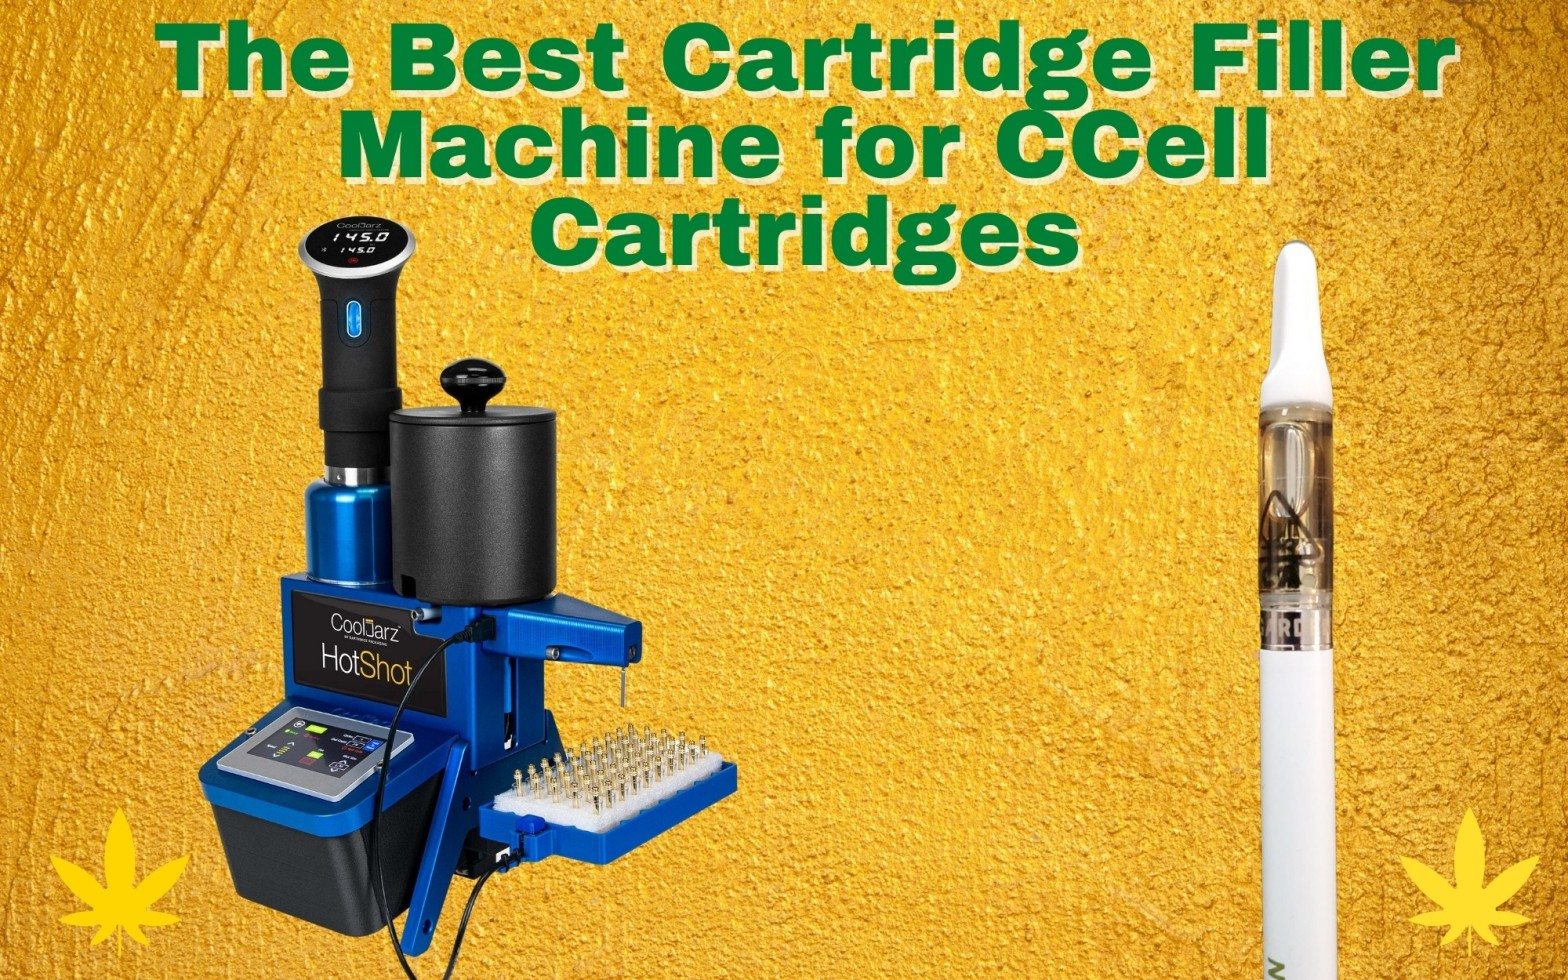 The Best Cartridge Filler Machine for CCell Cartridges